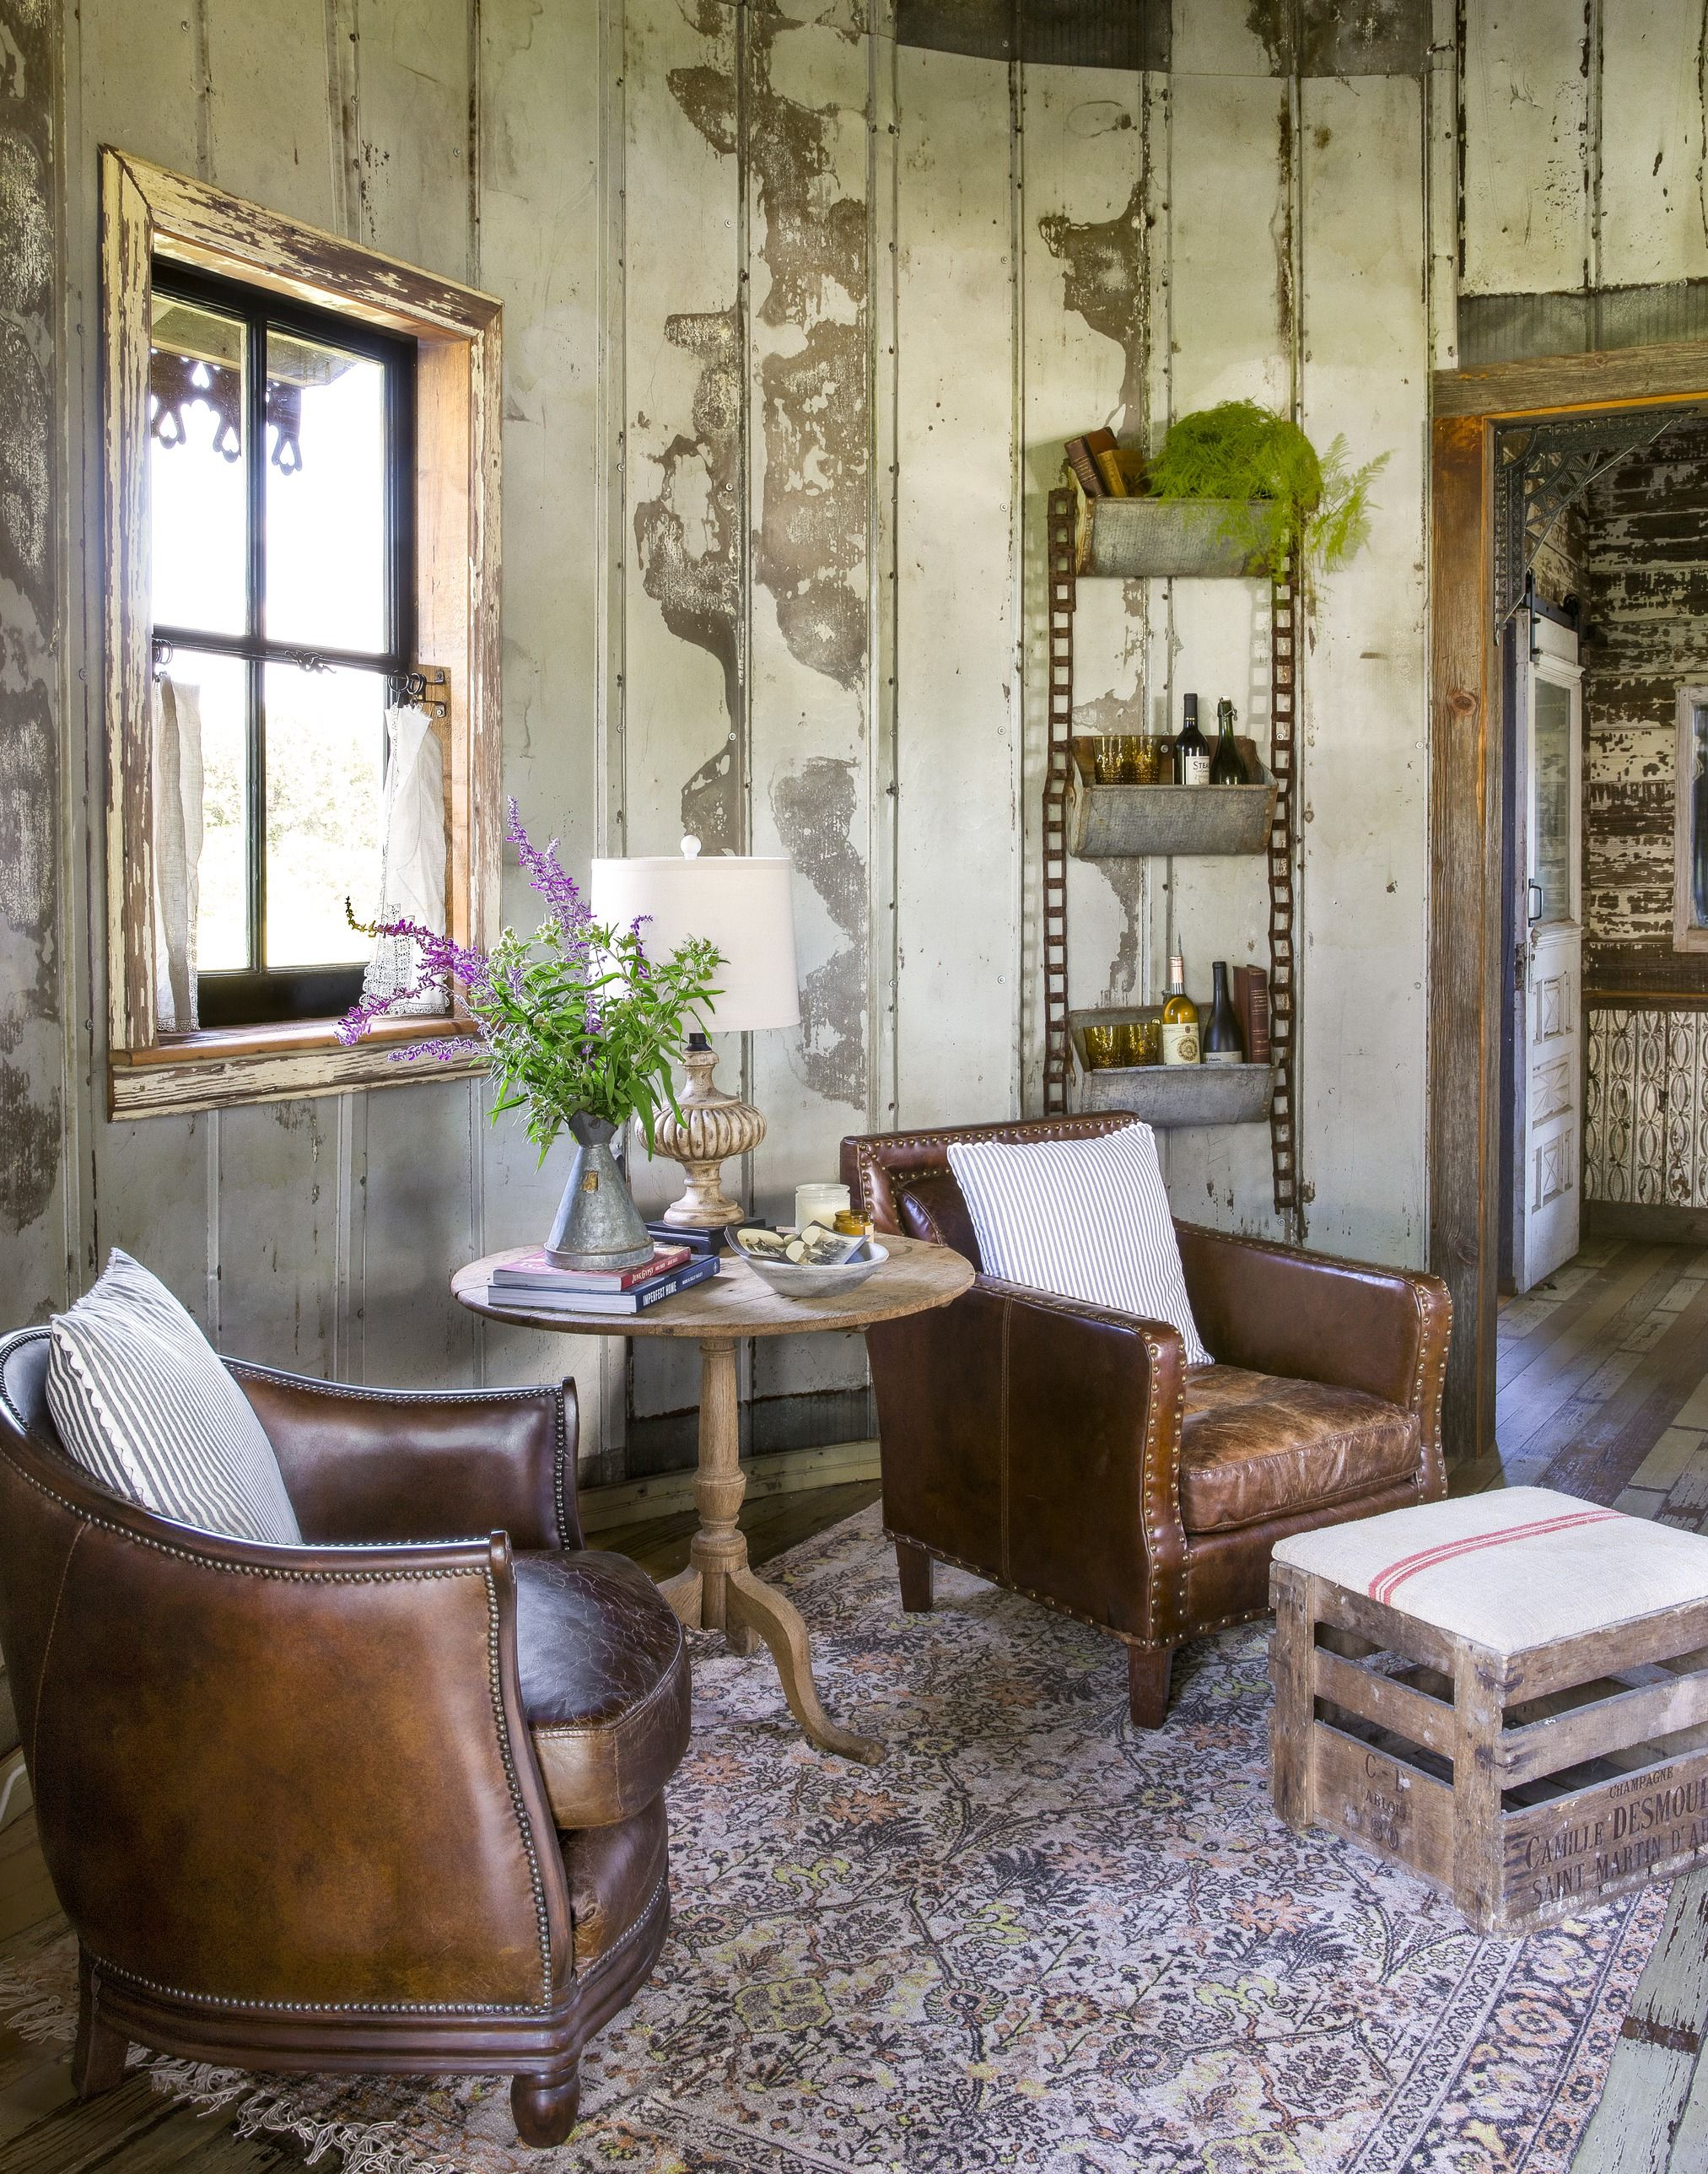 10 Rustic Living Room Ideas - Modern Rustic Living Room Decor and